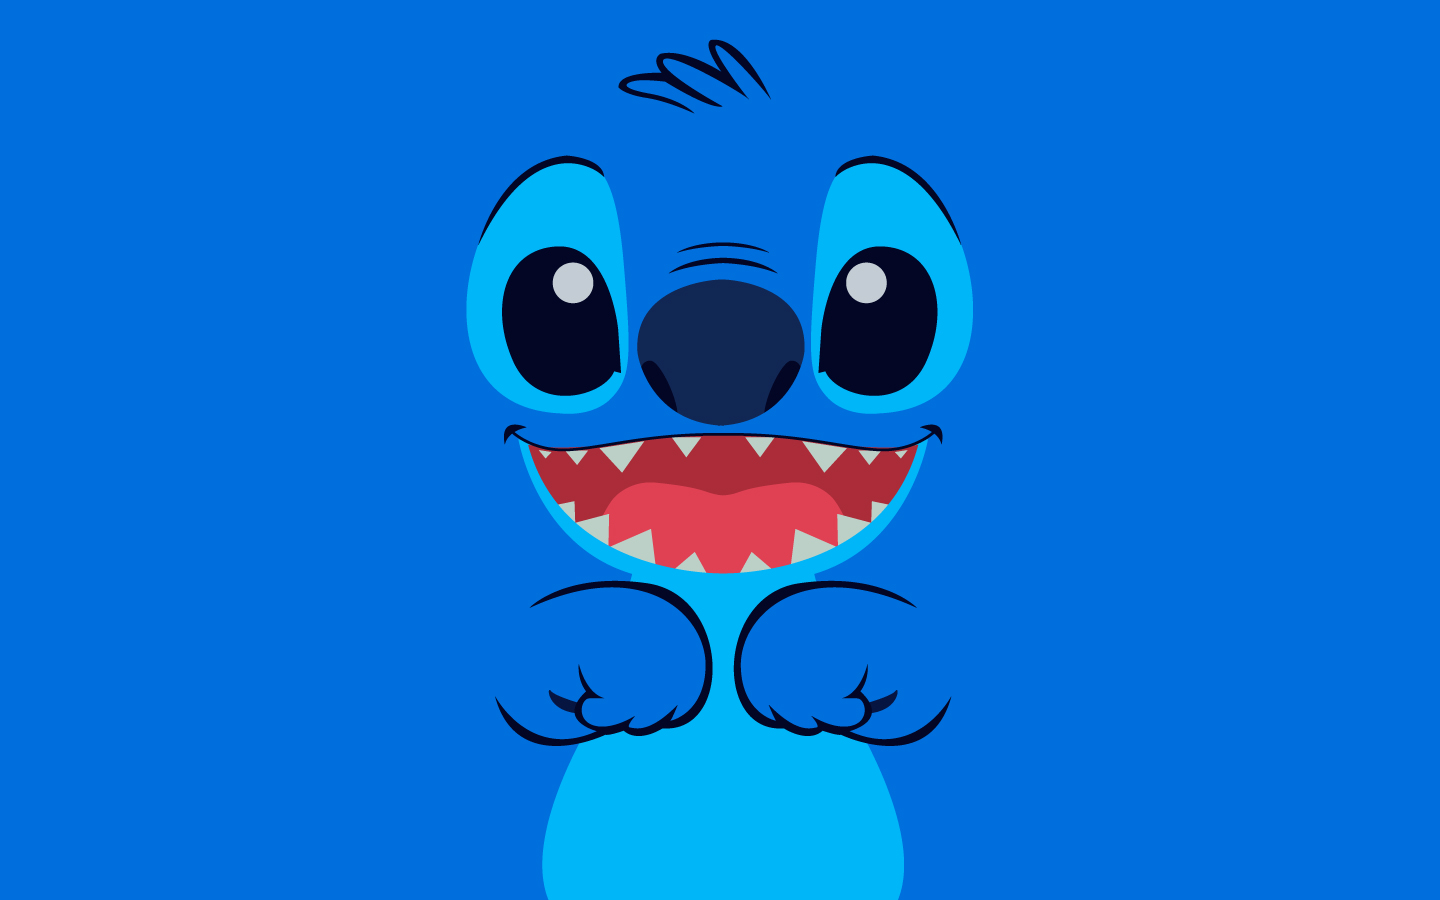 Gambar Wallpaper Kartun Stitch Gudang Wallpaper